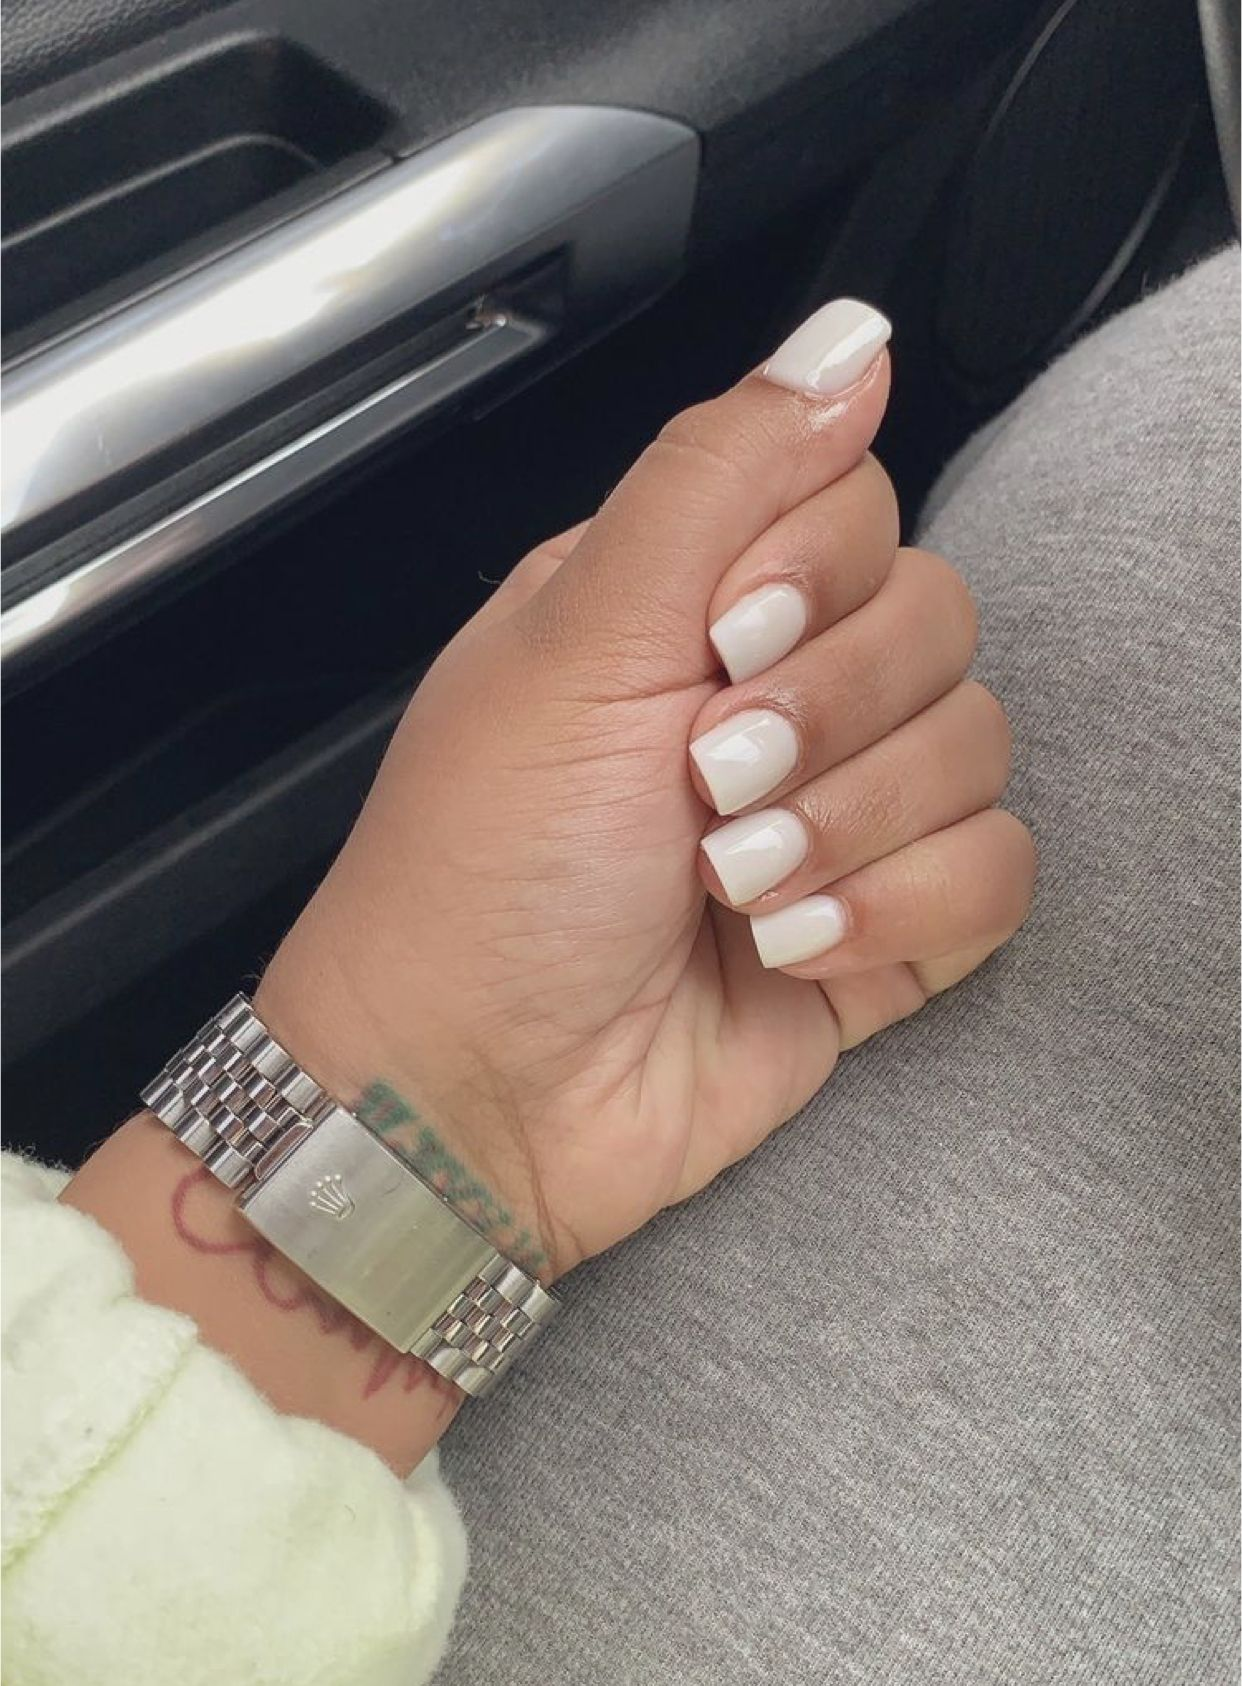 Itsdiorjaleia In 2020 Short Square Acrylic Nails Square Acrylic Nails Neutral Nails